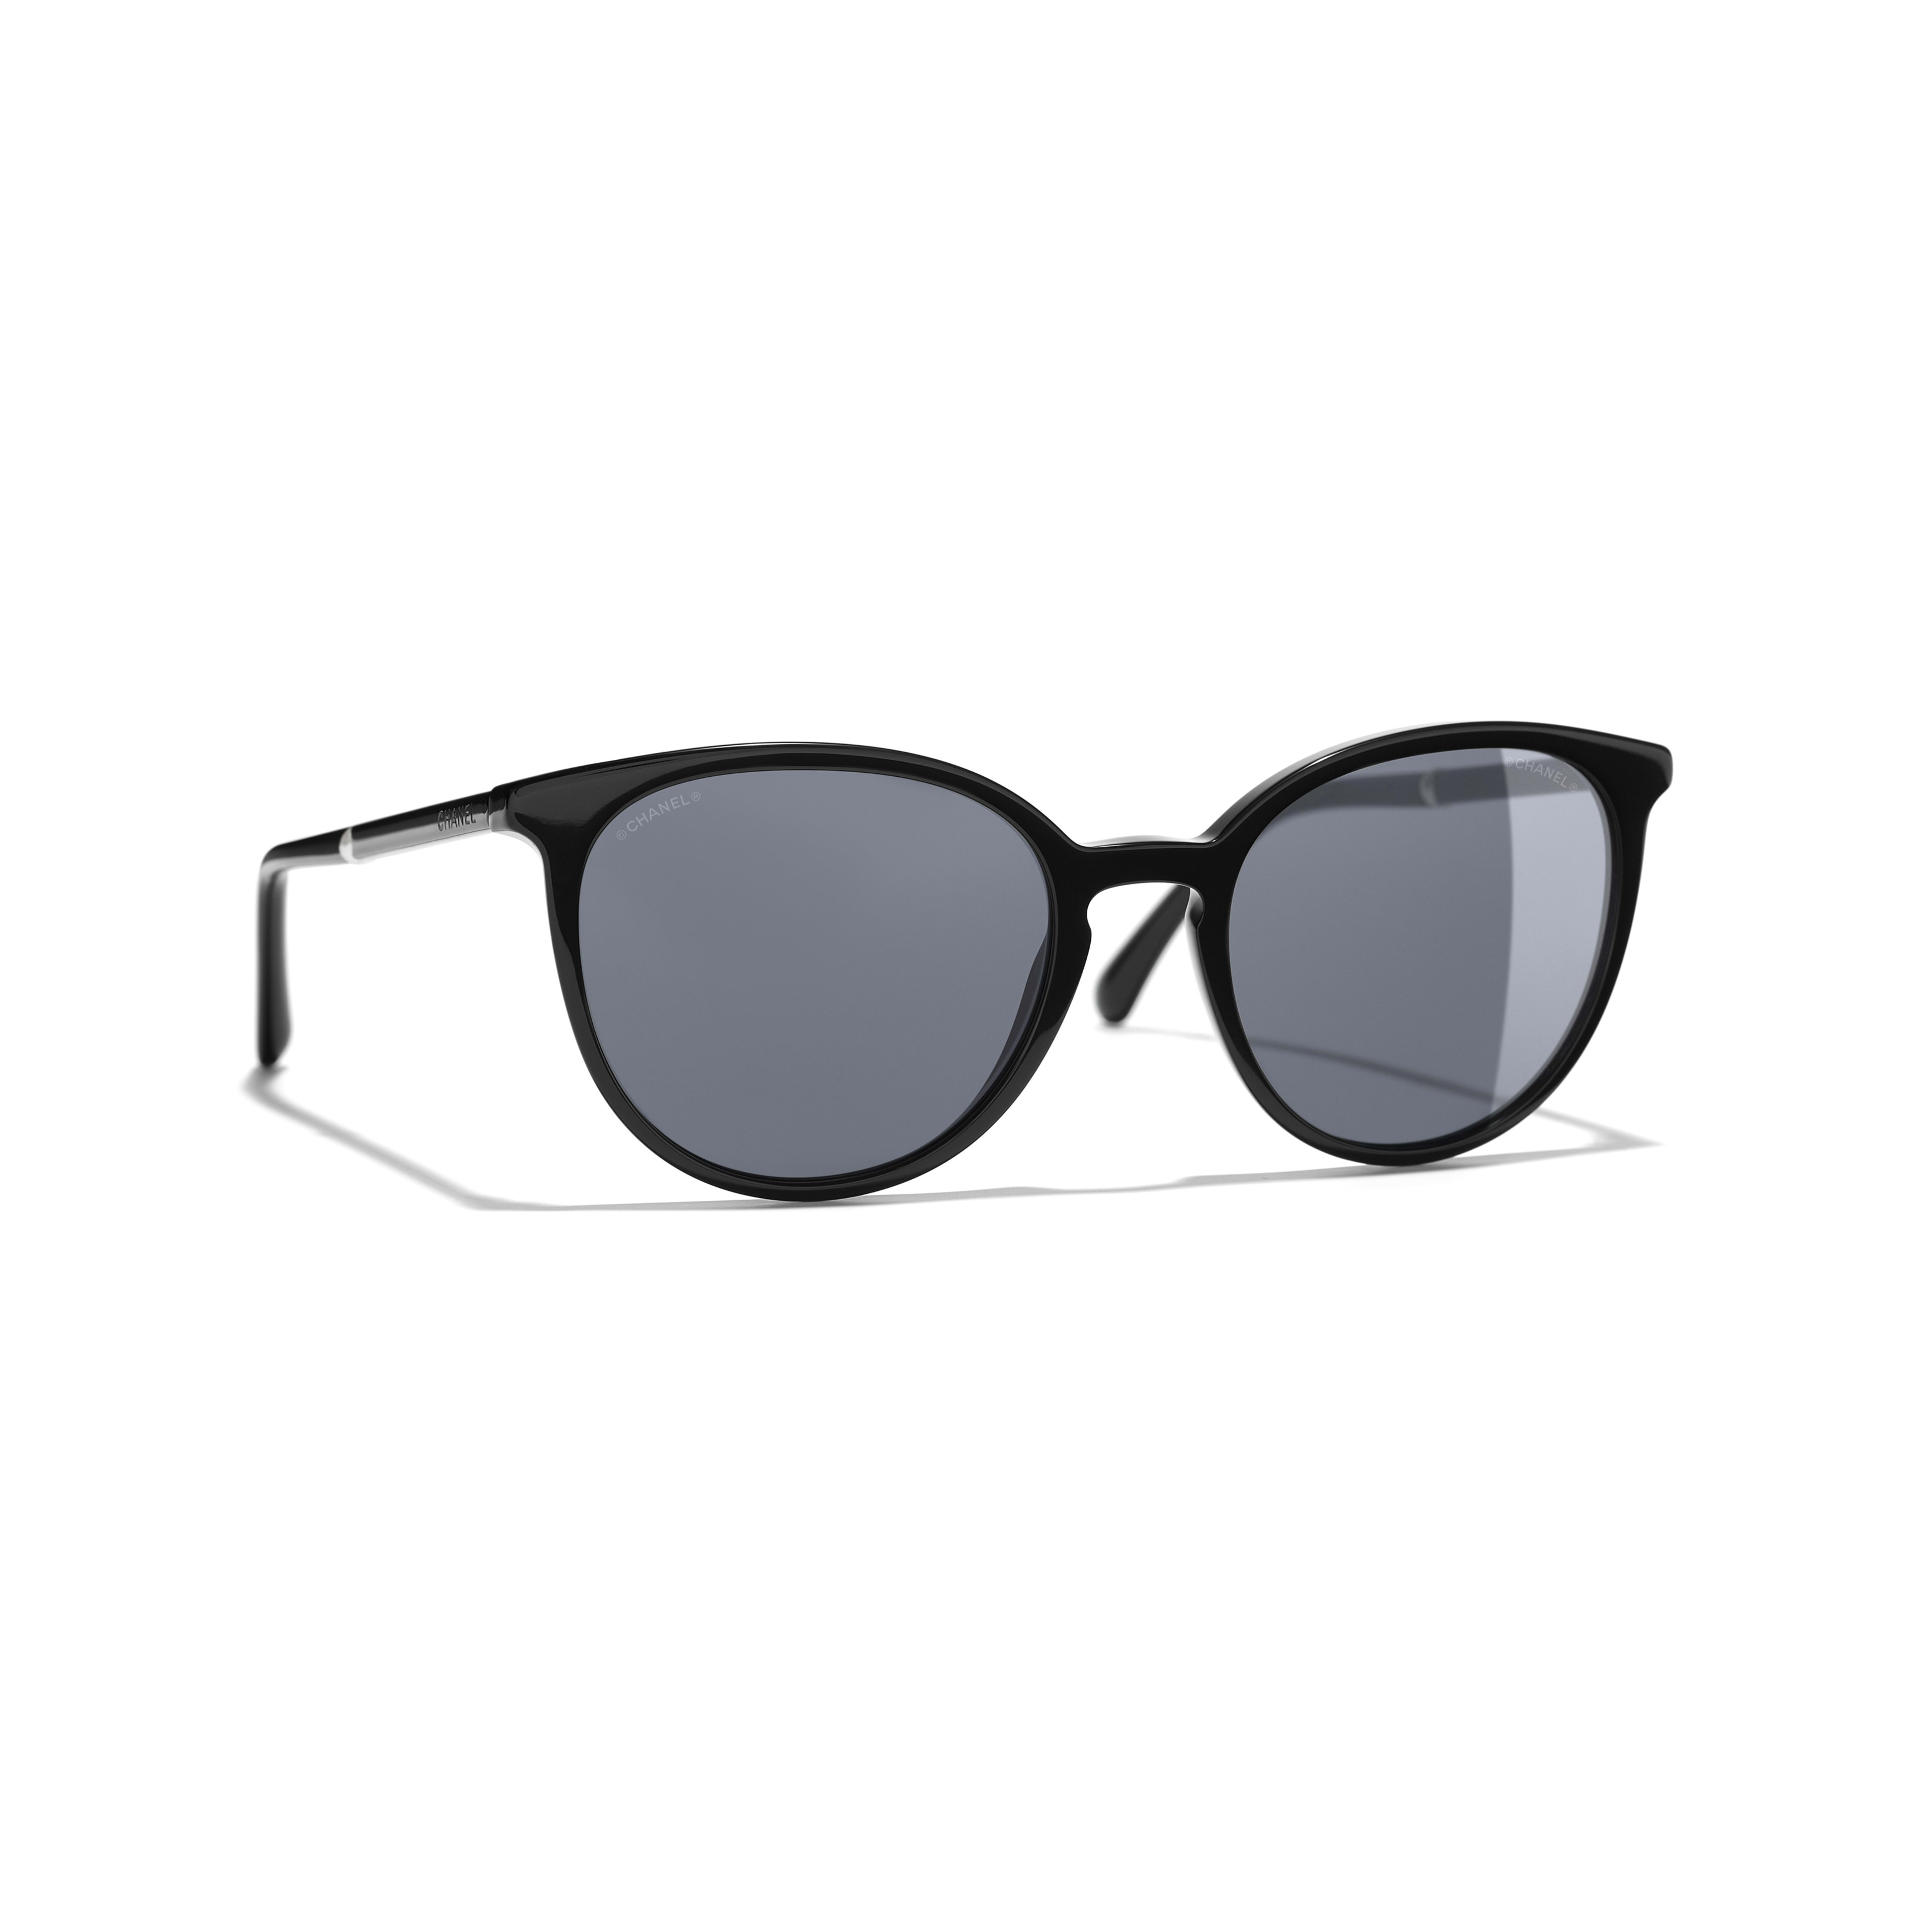 Butterfly Sunglasses - Black - Acetate & Imitation Pearls - Default view - see full sized version